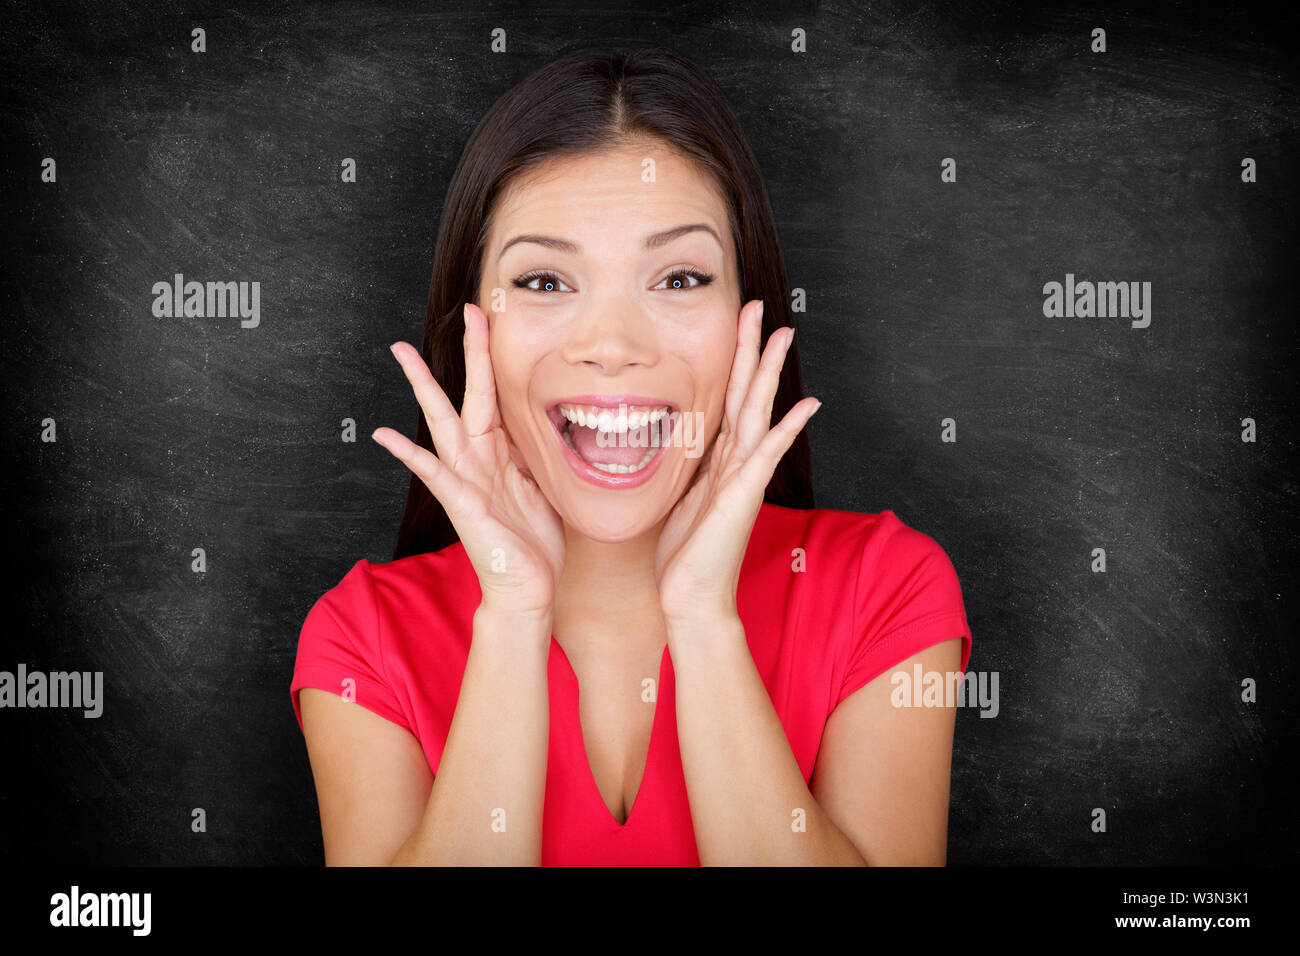 Woman by blackboard / chalkboard excited happy screaming with joy your message with copy space for text. Beautiful young asian multiracial causal female in red on black background. - Stock Image